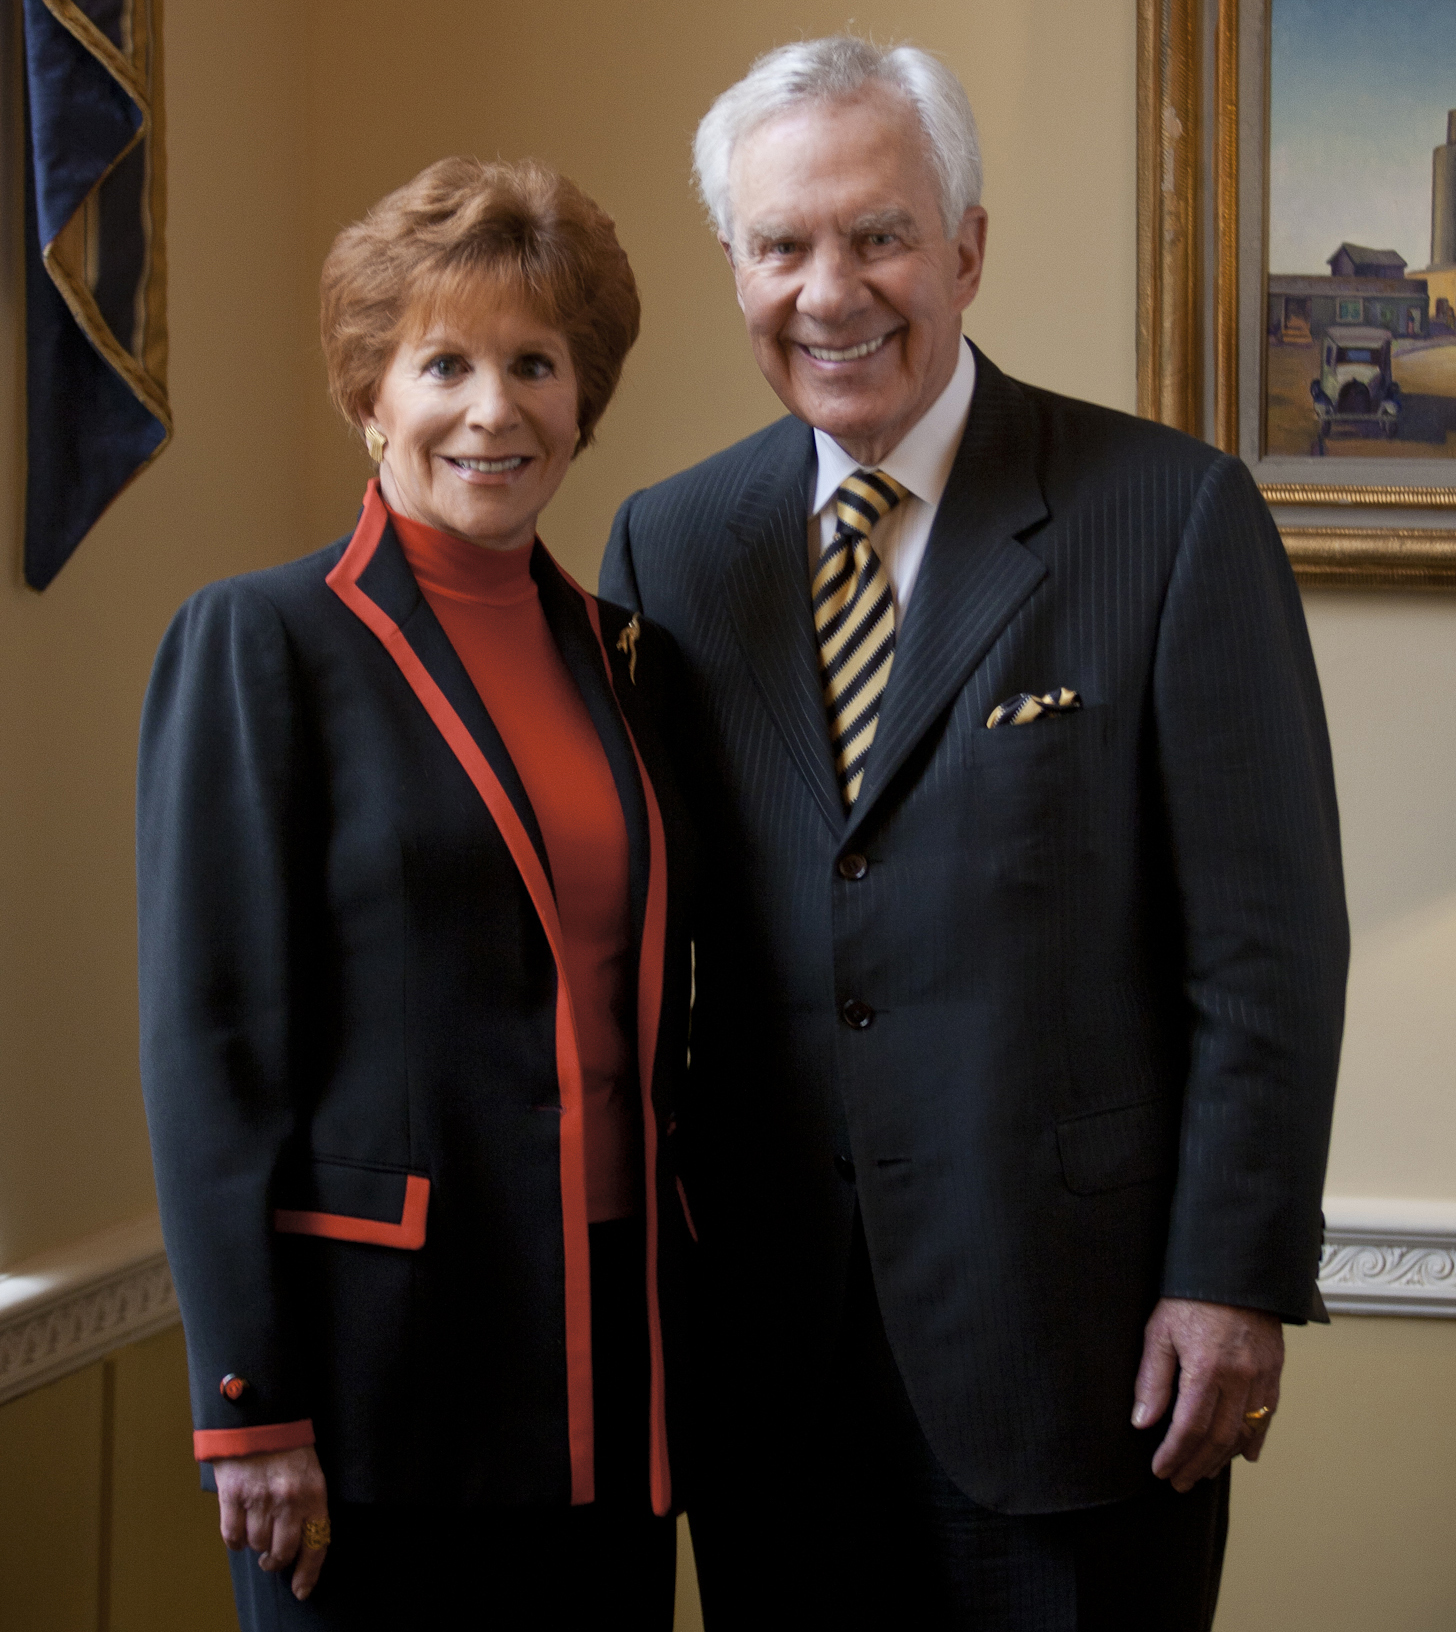 Dallas business leaders Linda Wertheimer Hart '65 and Milledge (Mitch) A. Hart, III